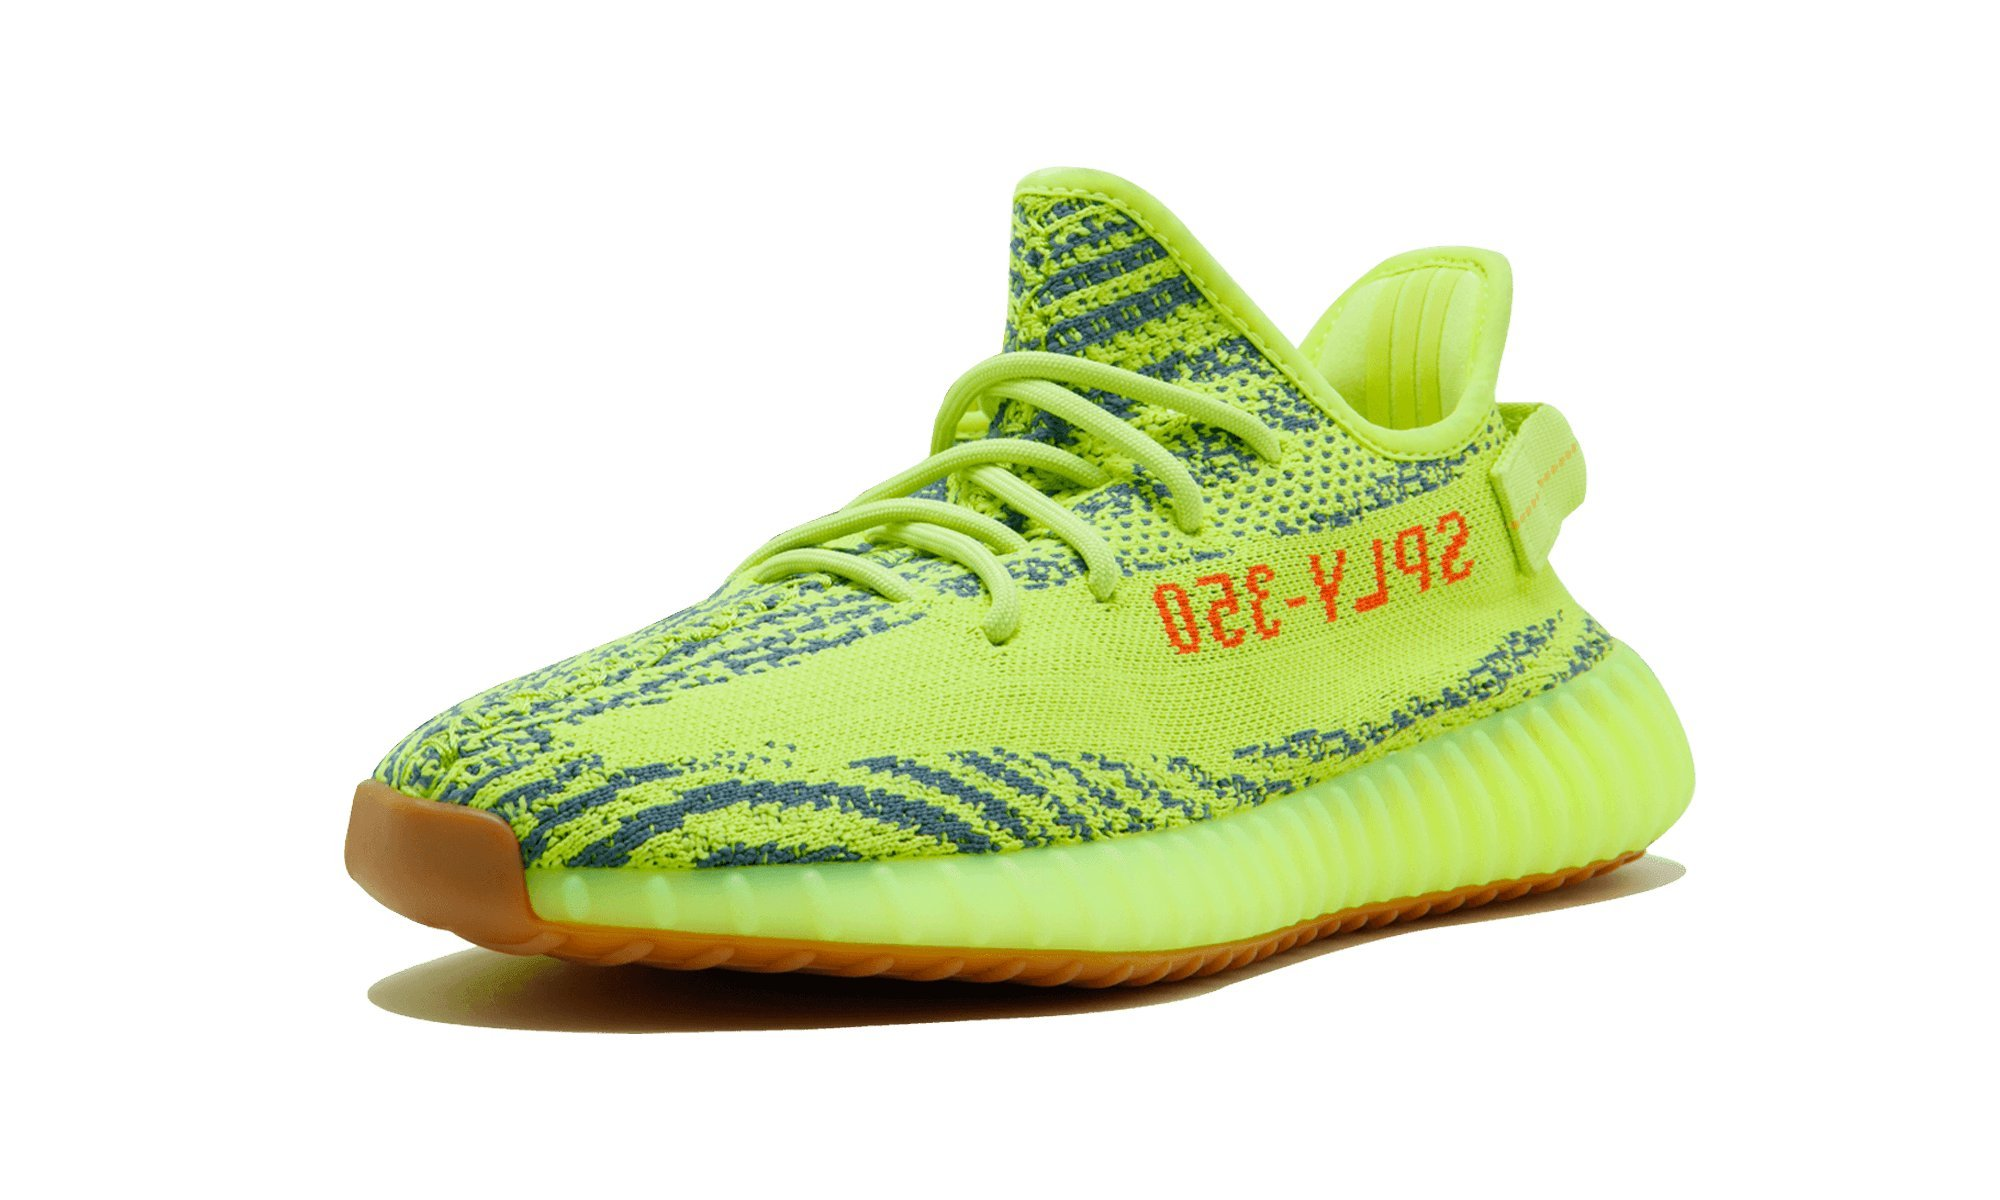 adidas yeezy impulso 350 v2 b37572 amazon